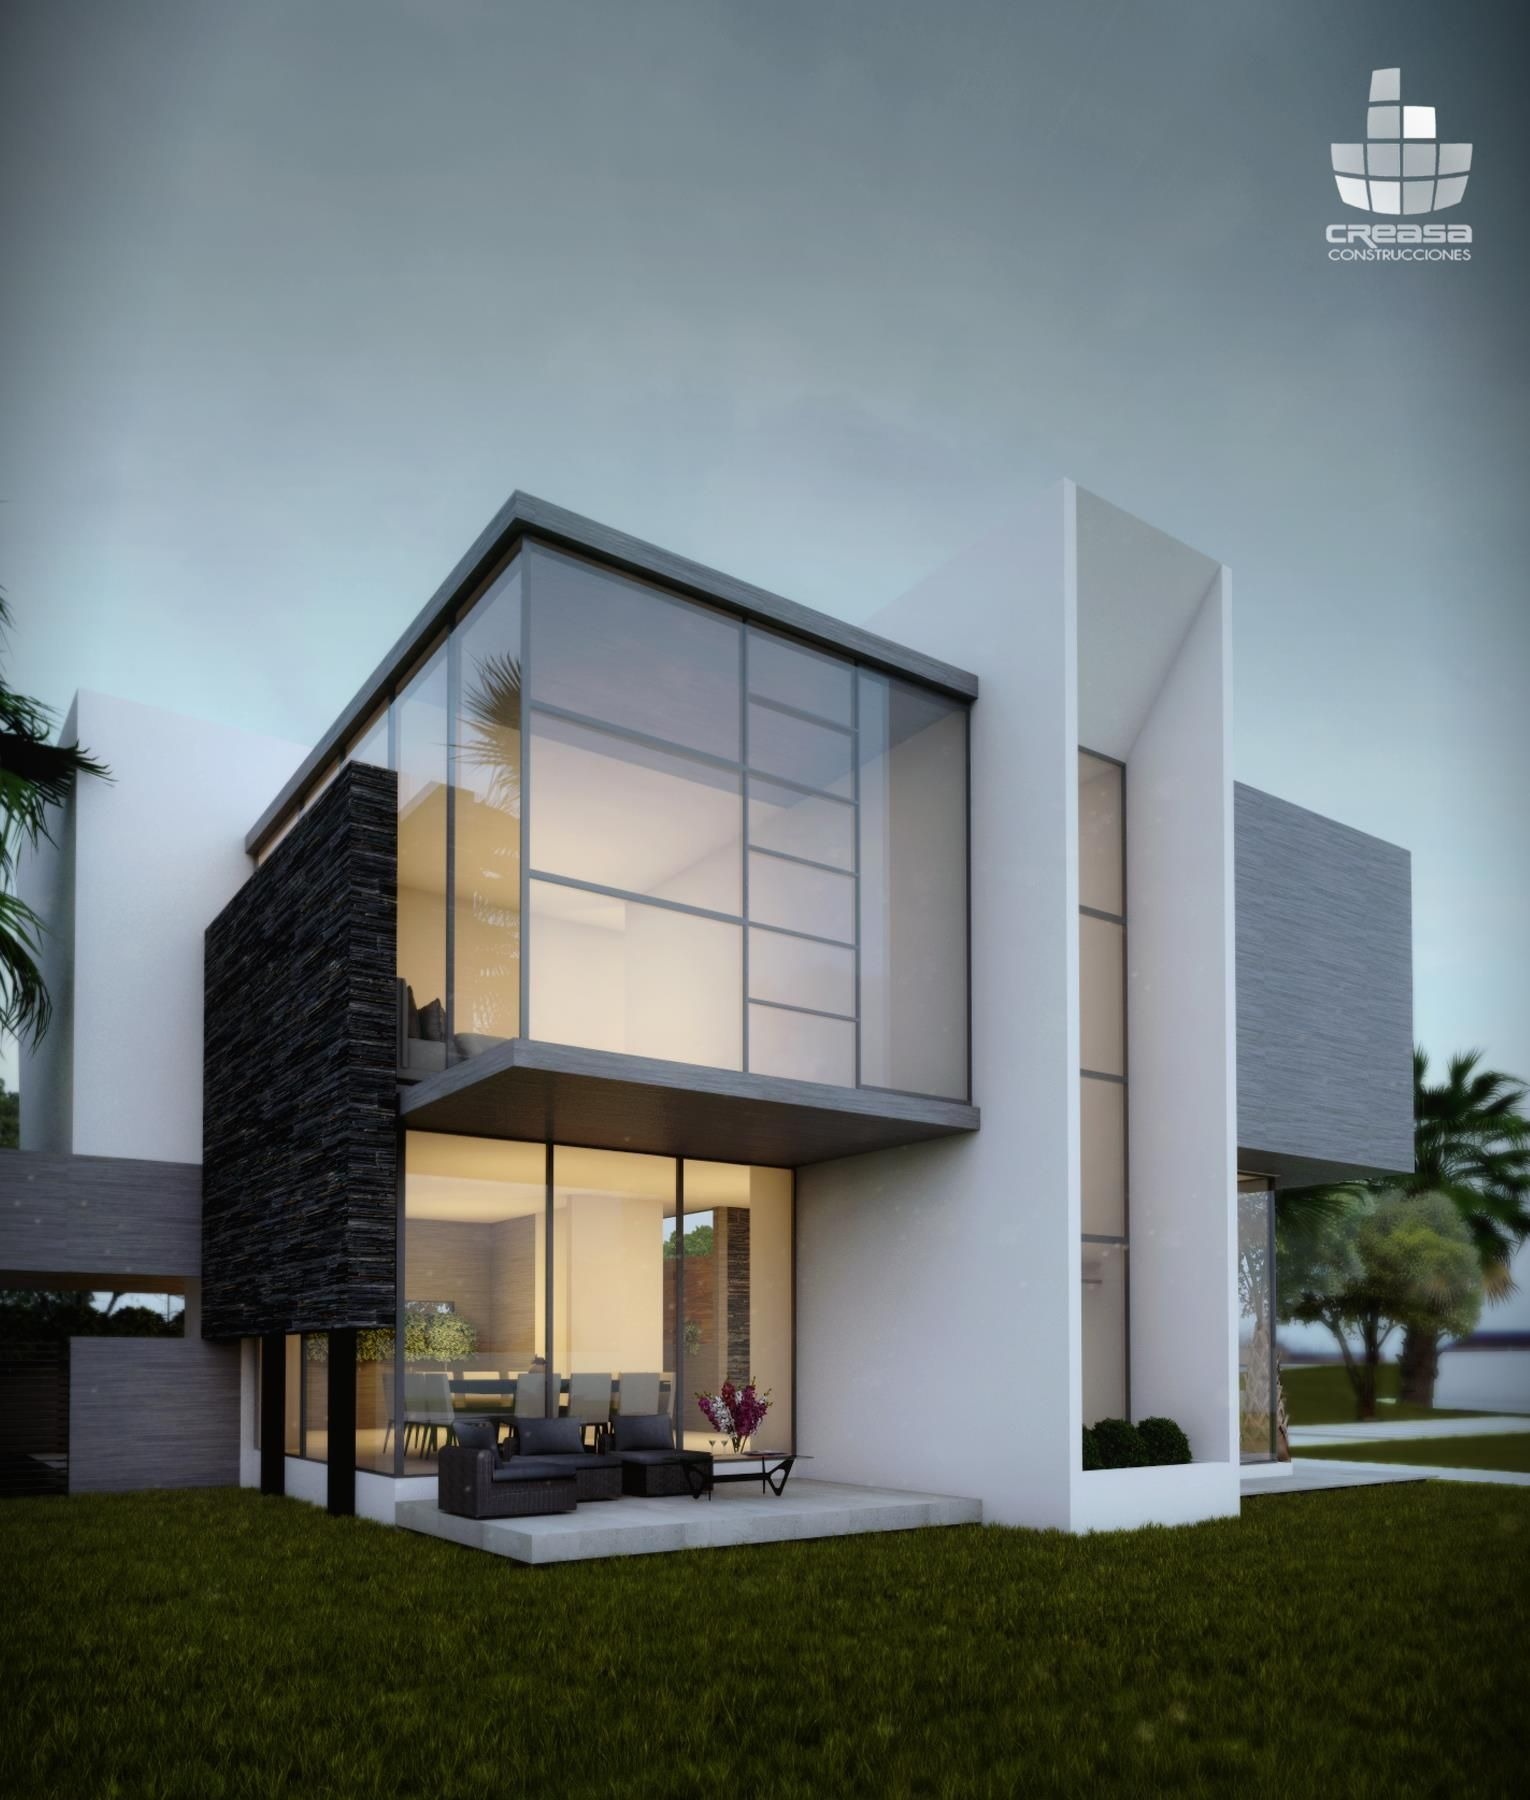 Creasa modern architecture pinterest villas house for Contemporary building plans